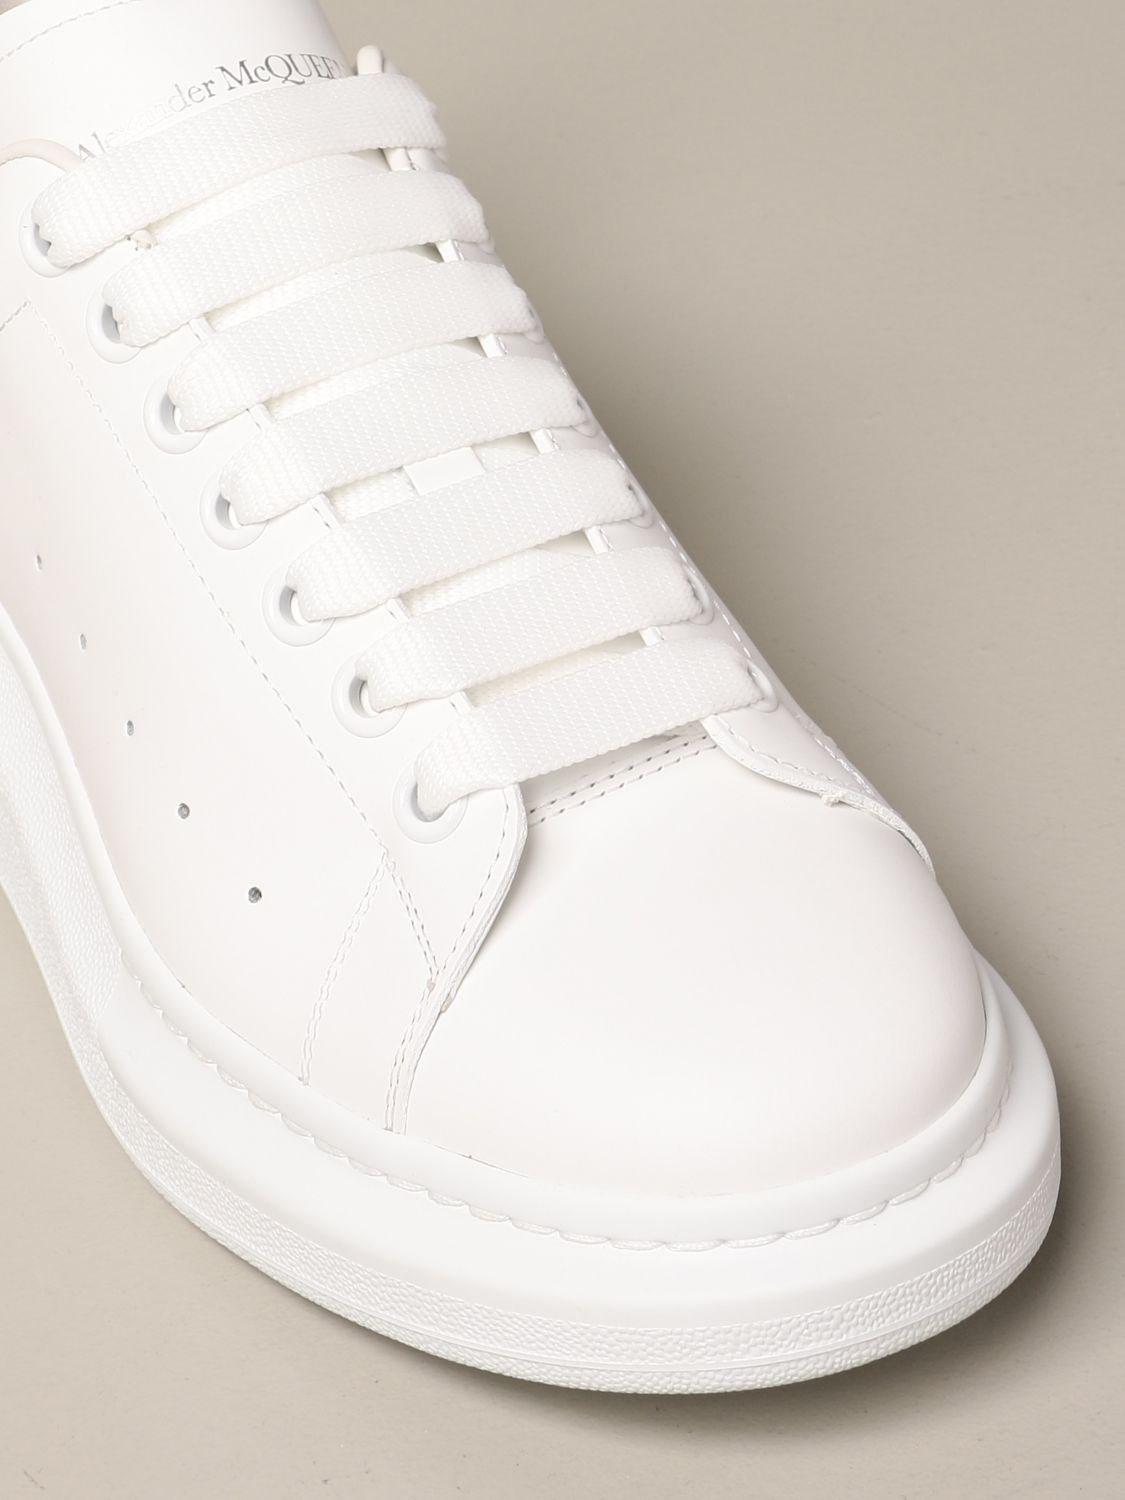 Trainers Alexander Mcqueen: Alexander McQueen trainers in leather with logo white 4